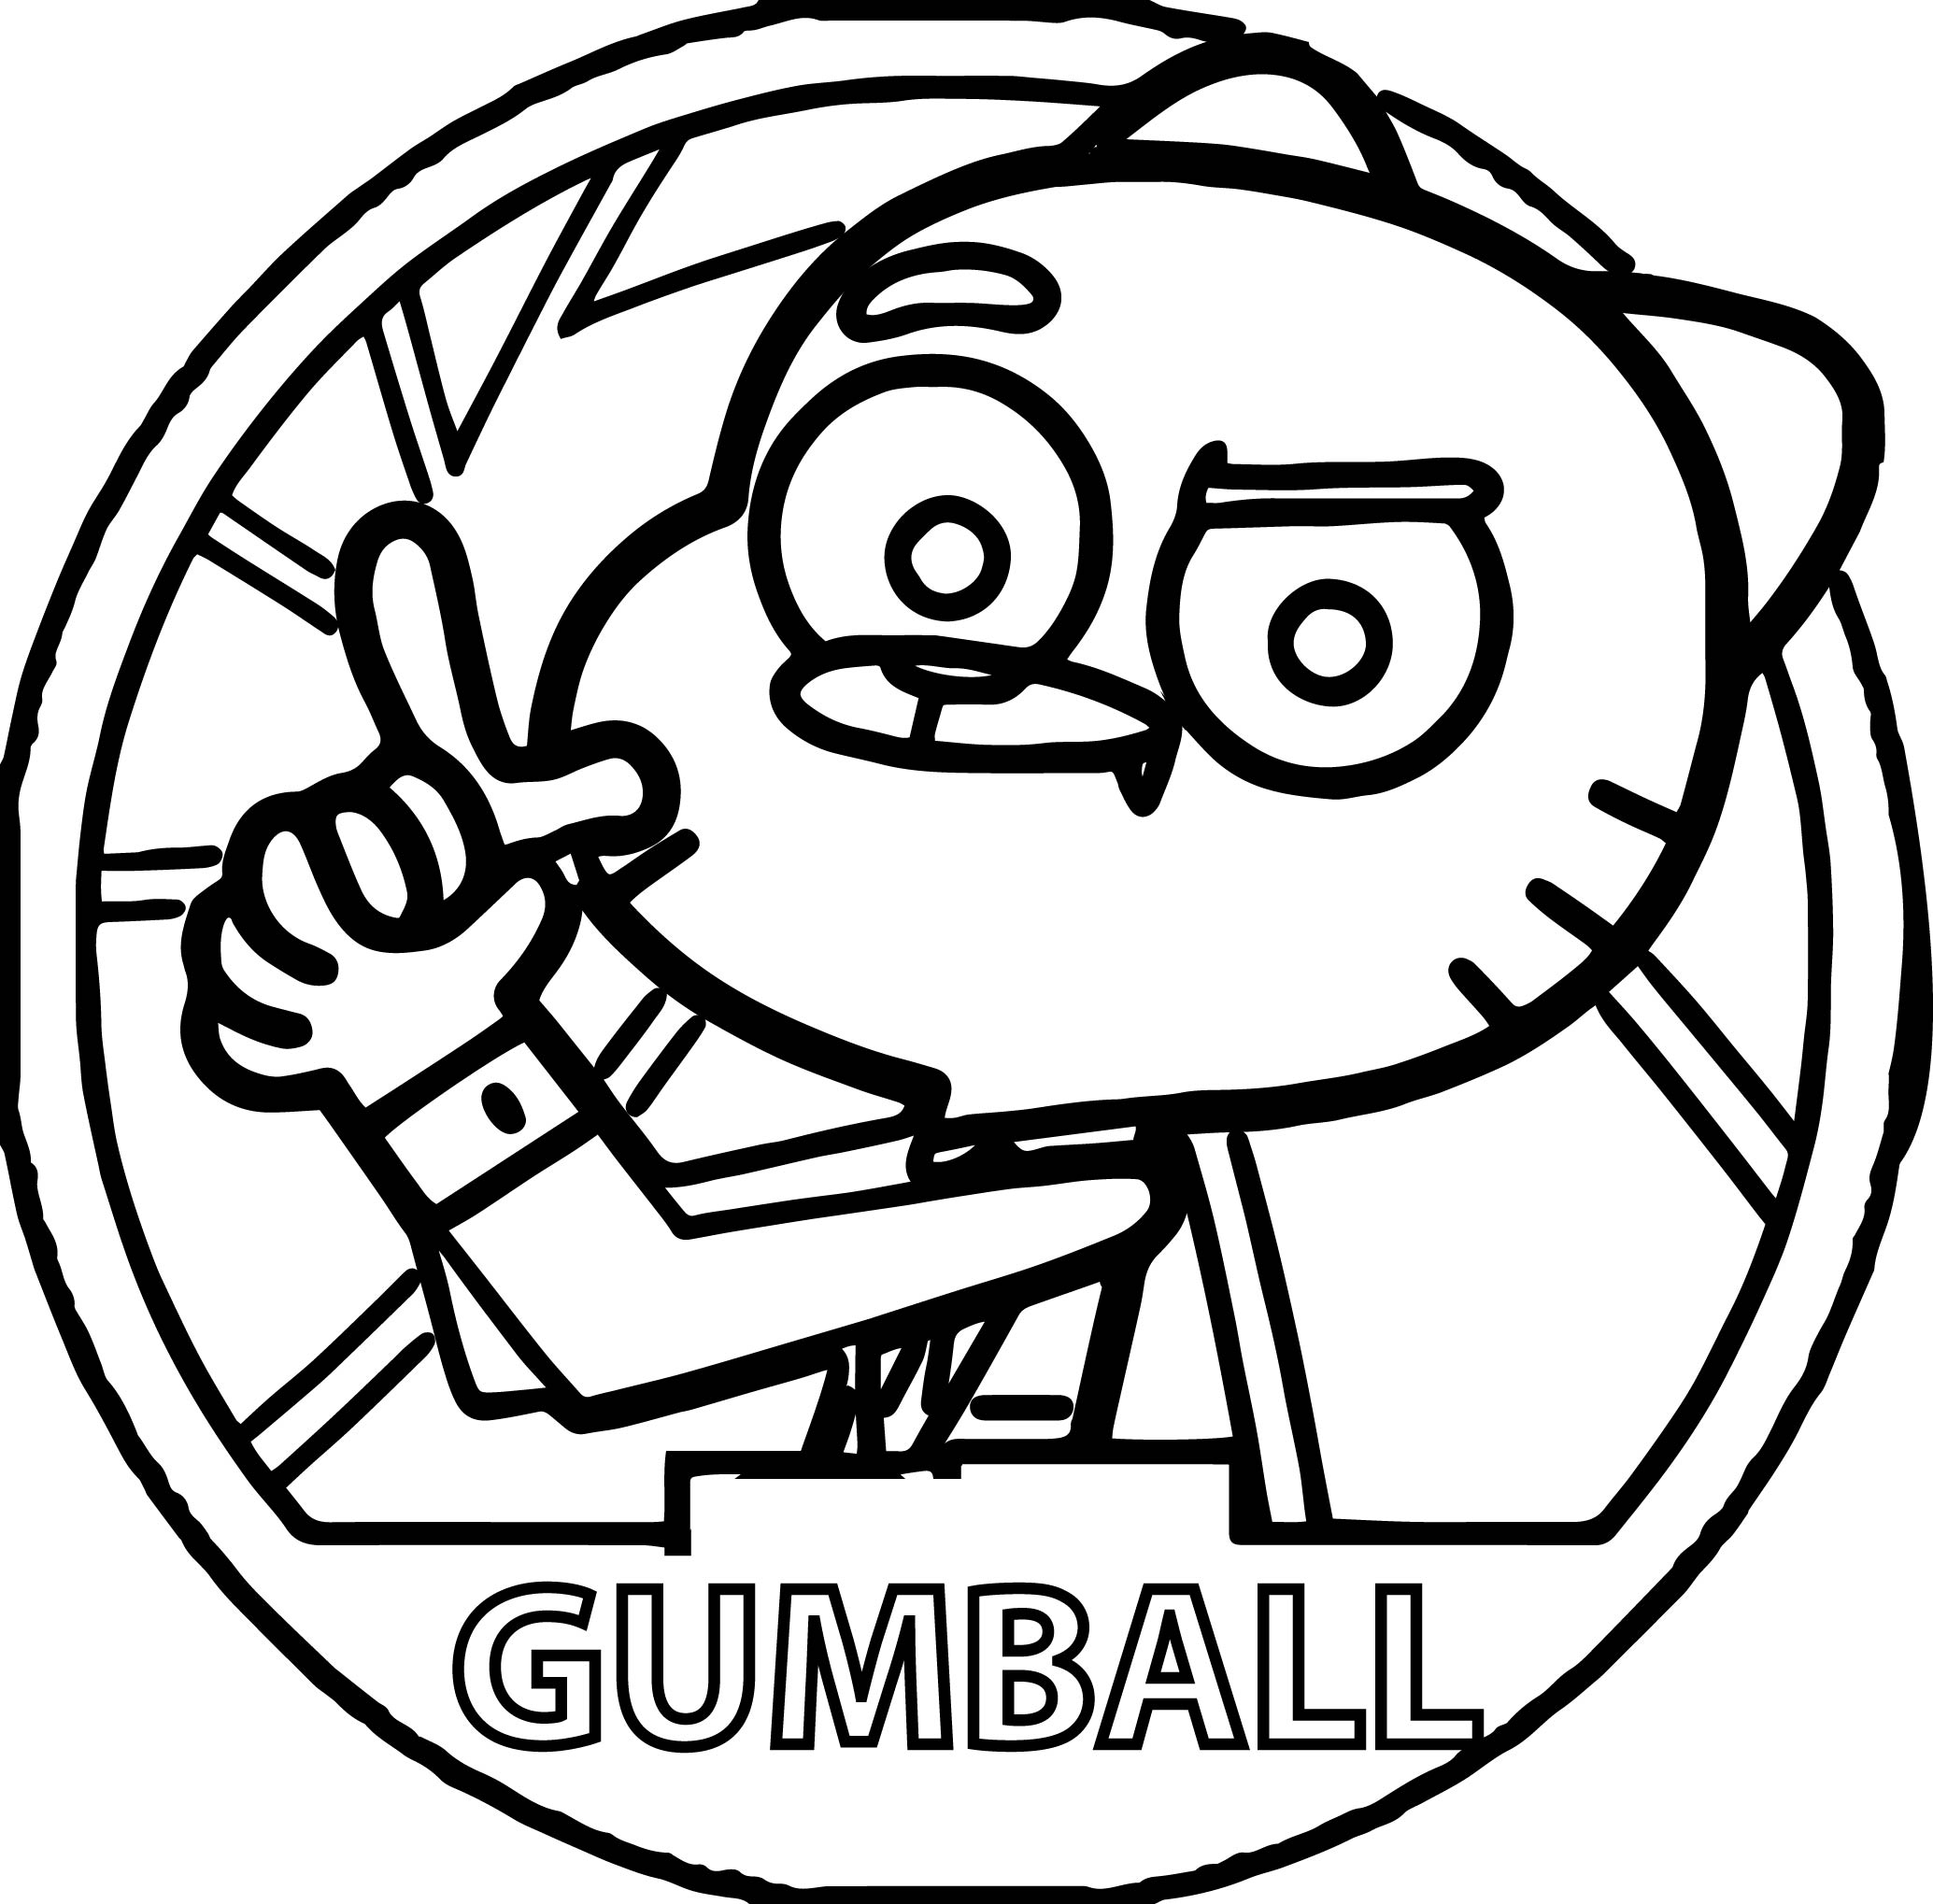 Agent Gumball Circle Coloring Pages Wecoloringpage Circle Coloring Pages